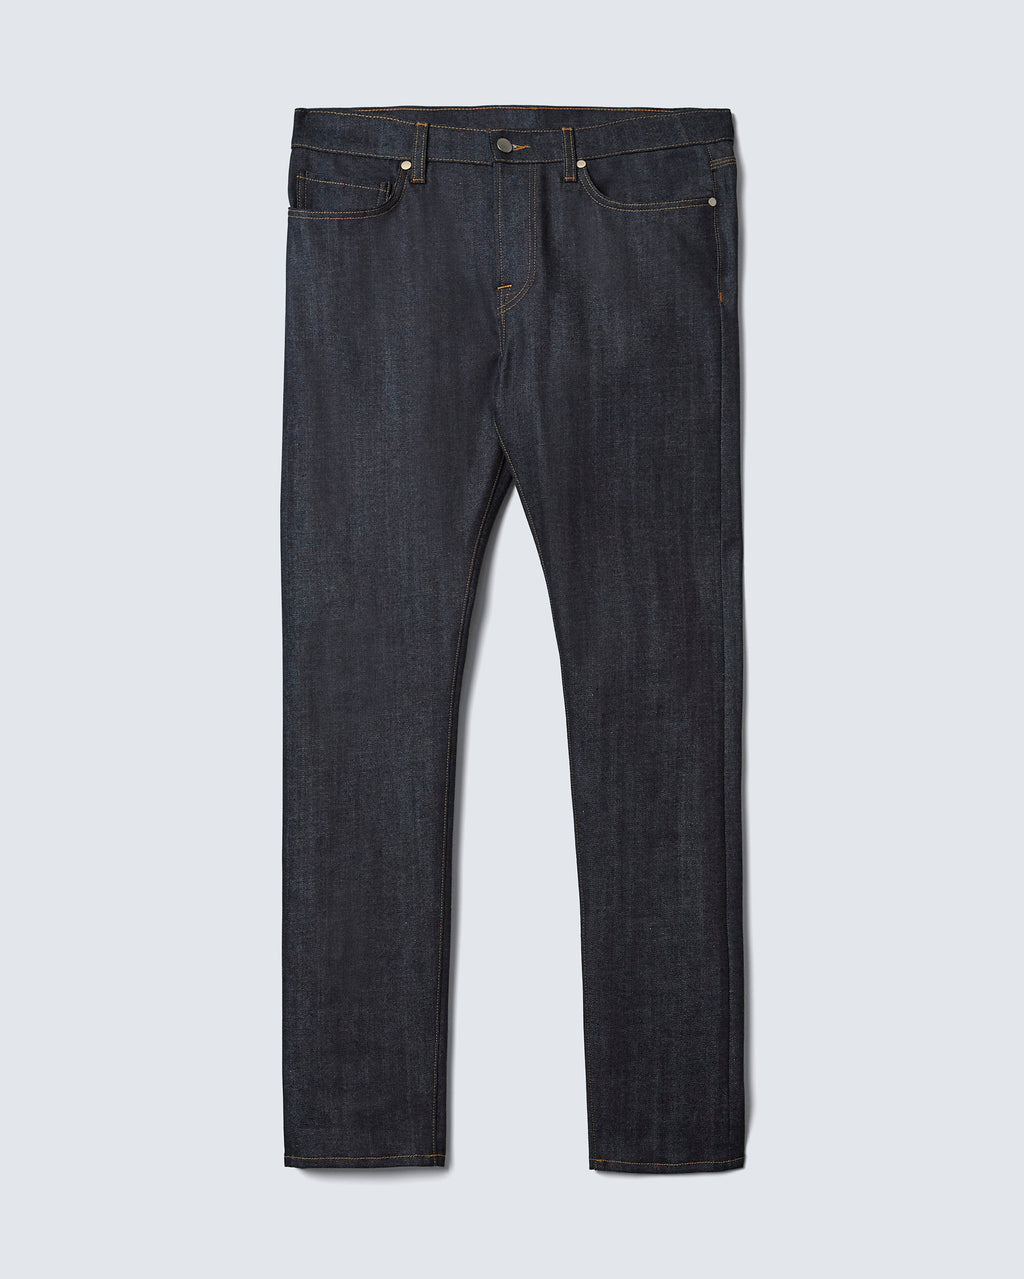 The Modern Skinny in Indigo Stretch Selvage